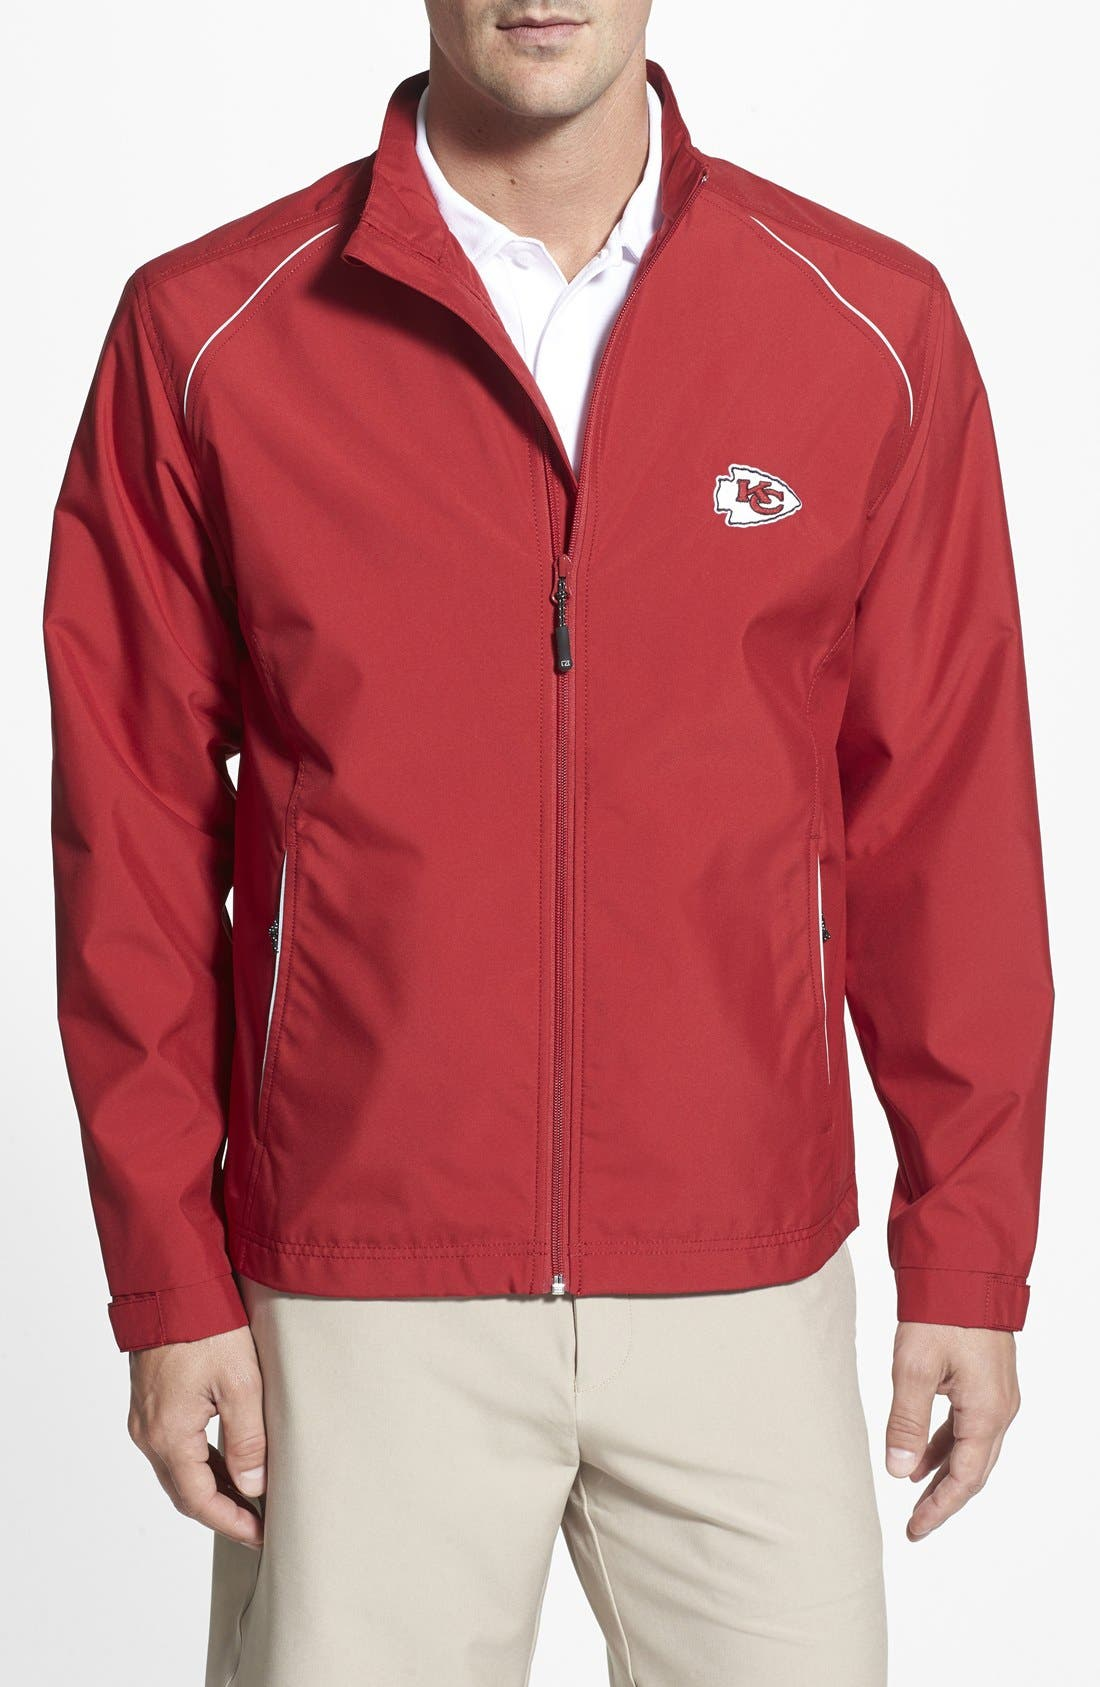 Kansas City Chiefs - Beacon WeatherTec Wind & Water Resistant Jacket,                         Main,                         color, Cardinal Red